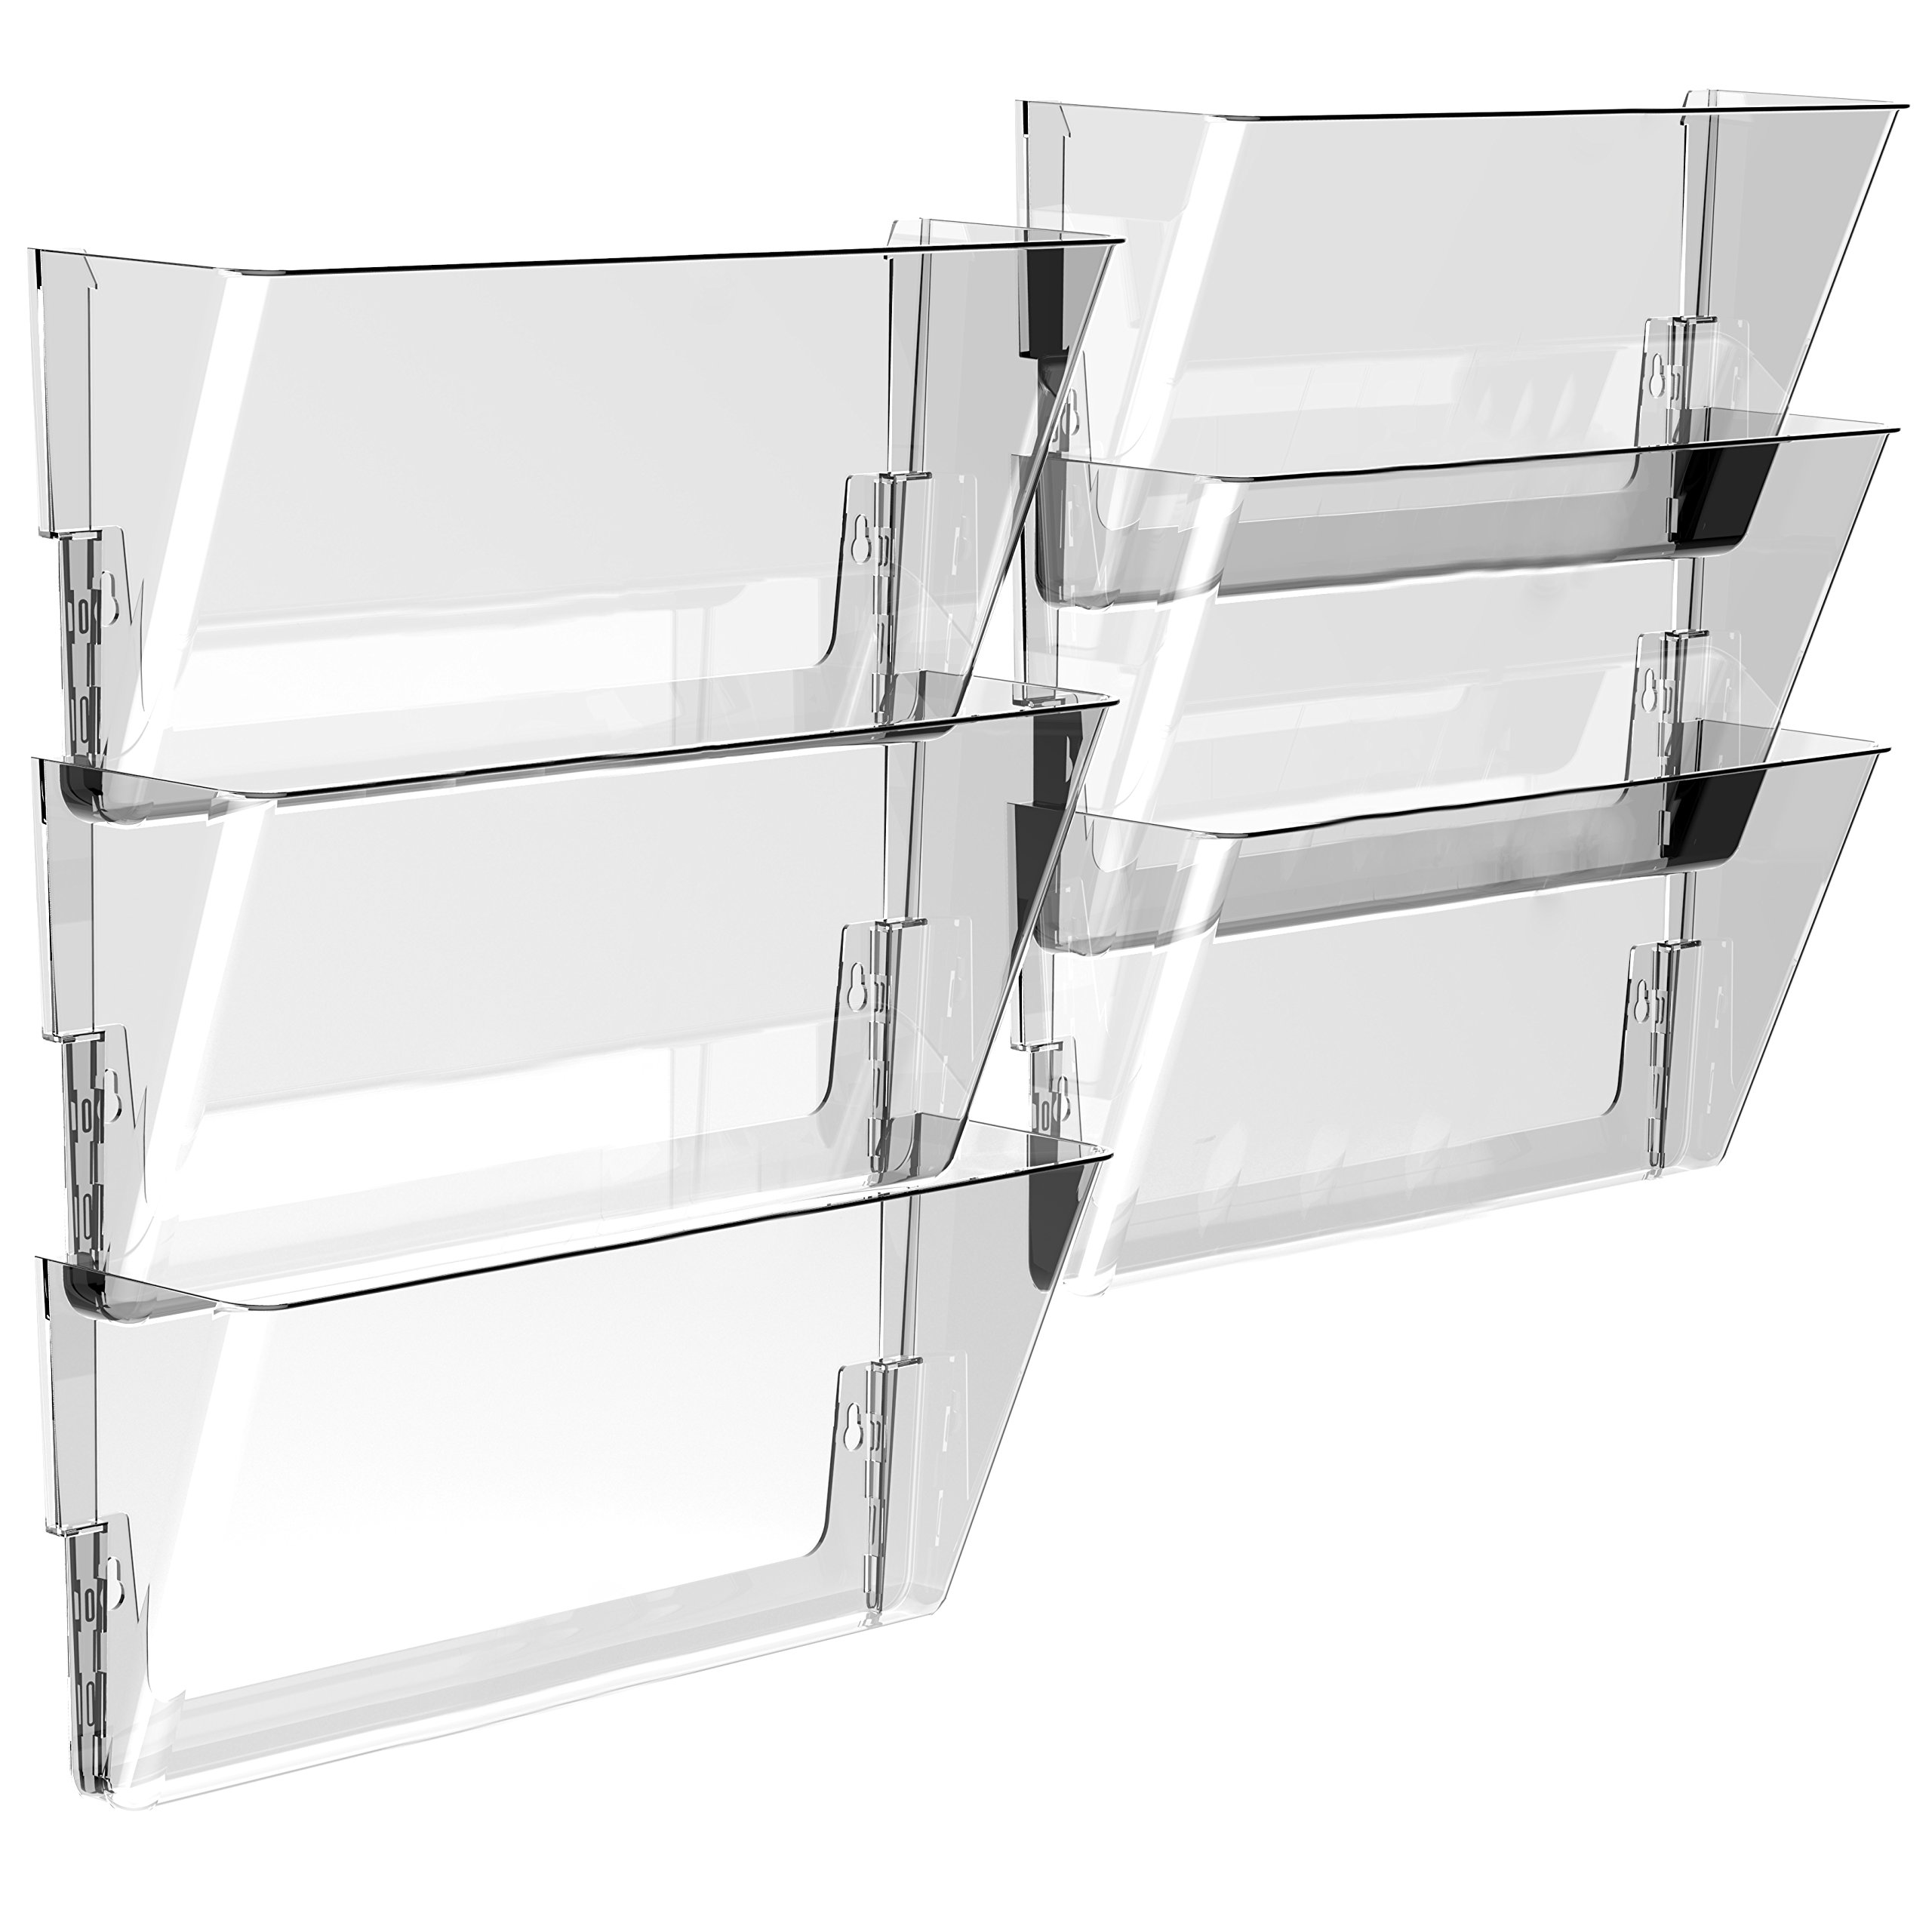 Storex Wall File, 16 x 4 x 7 Inches, Legal, Clear, Case of 6 (70207U06C) by Storex